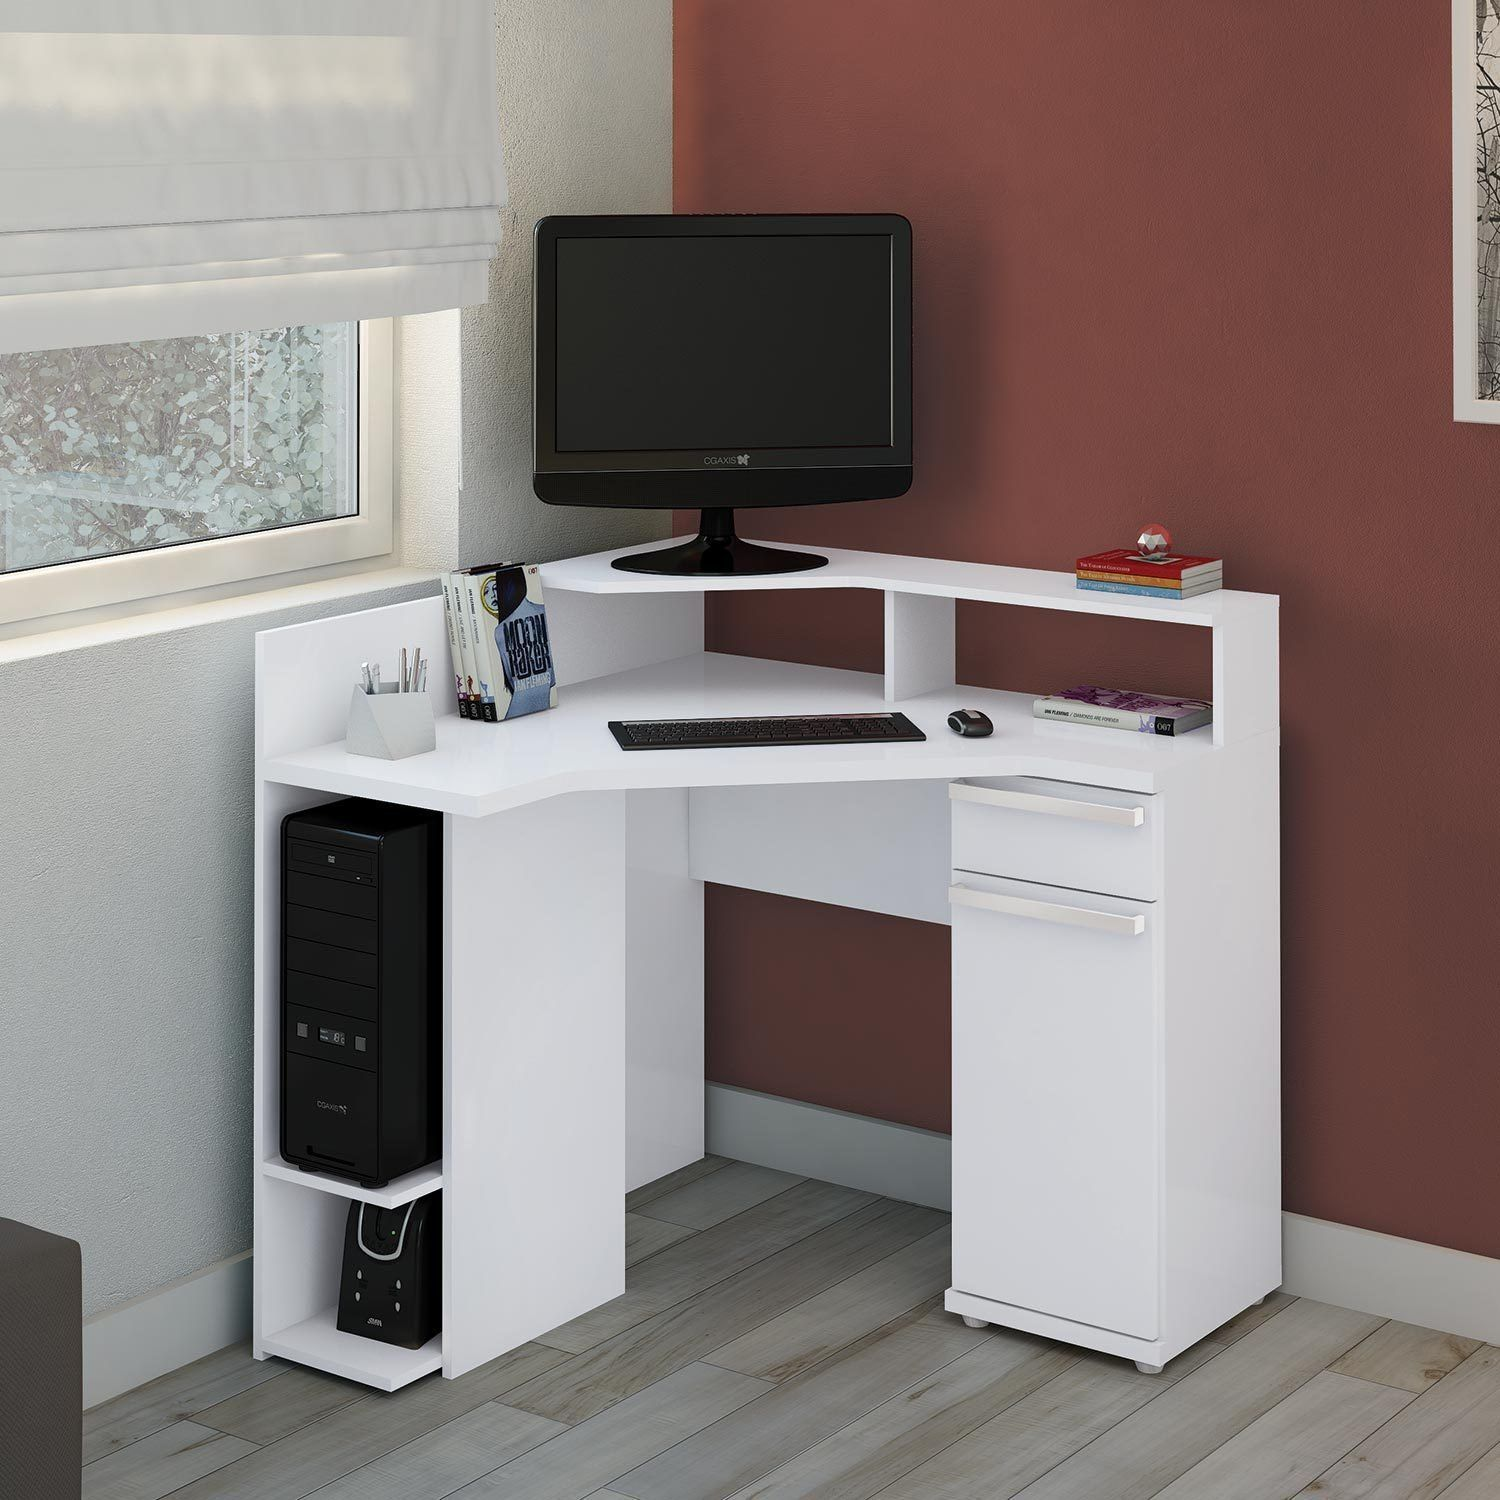 8 Computer Table Ideas For Home Office Muebles Para Pc Muebles